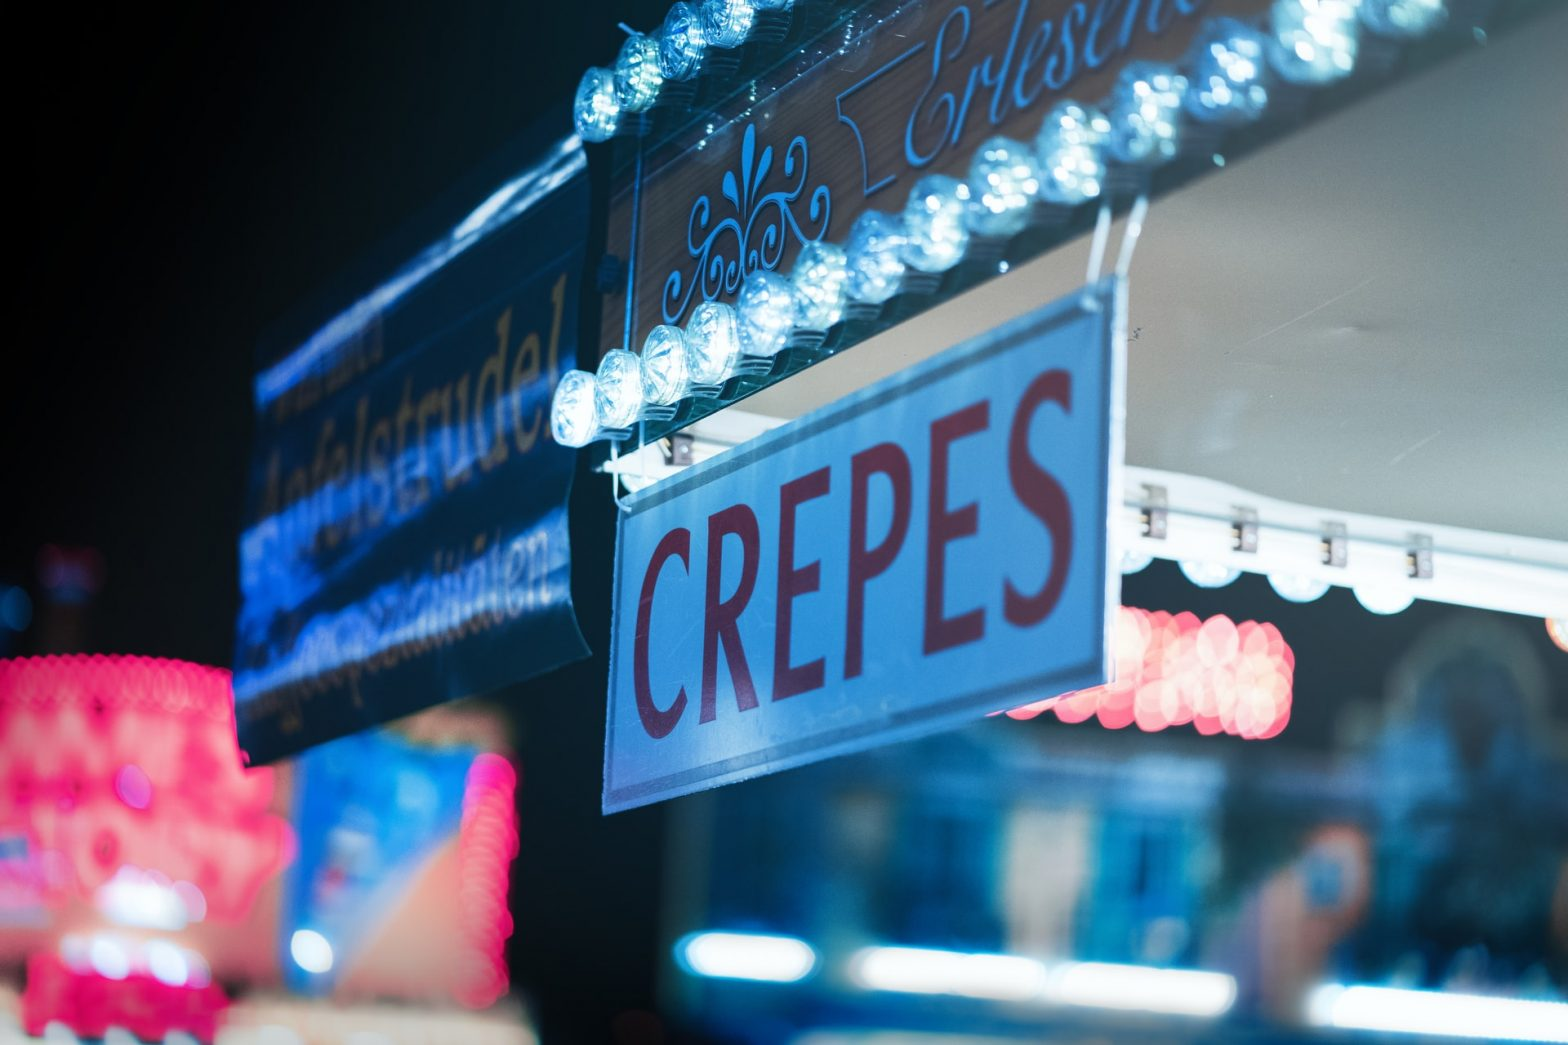 crepes sign